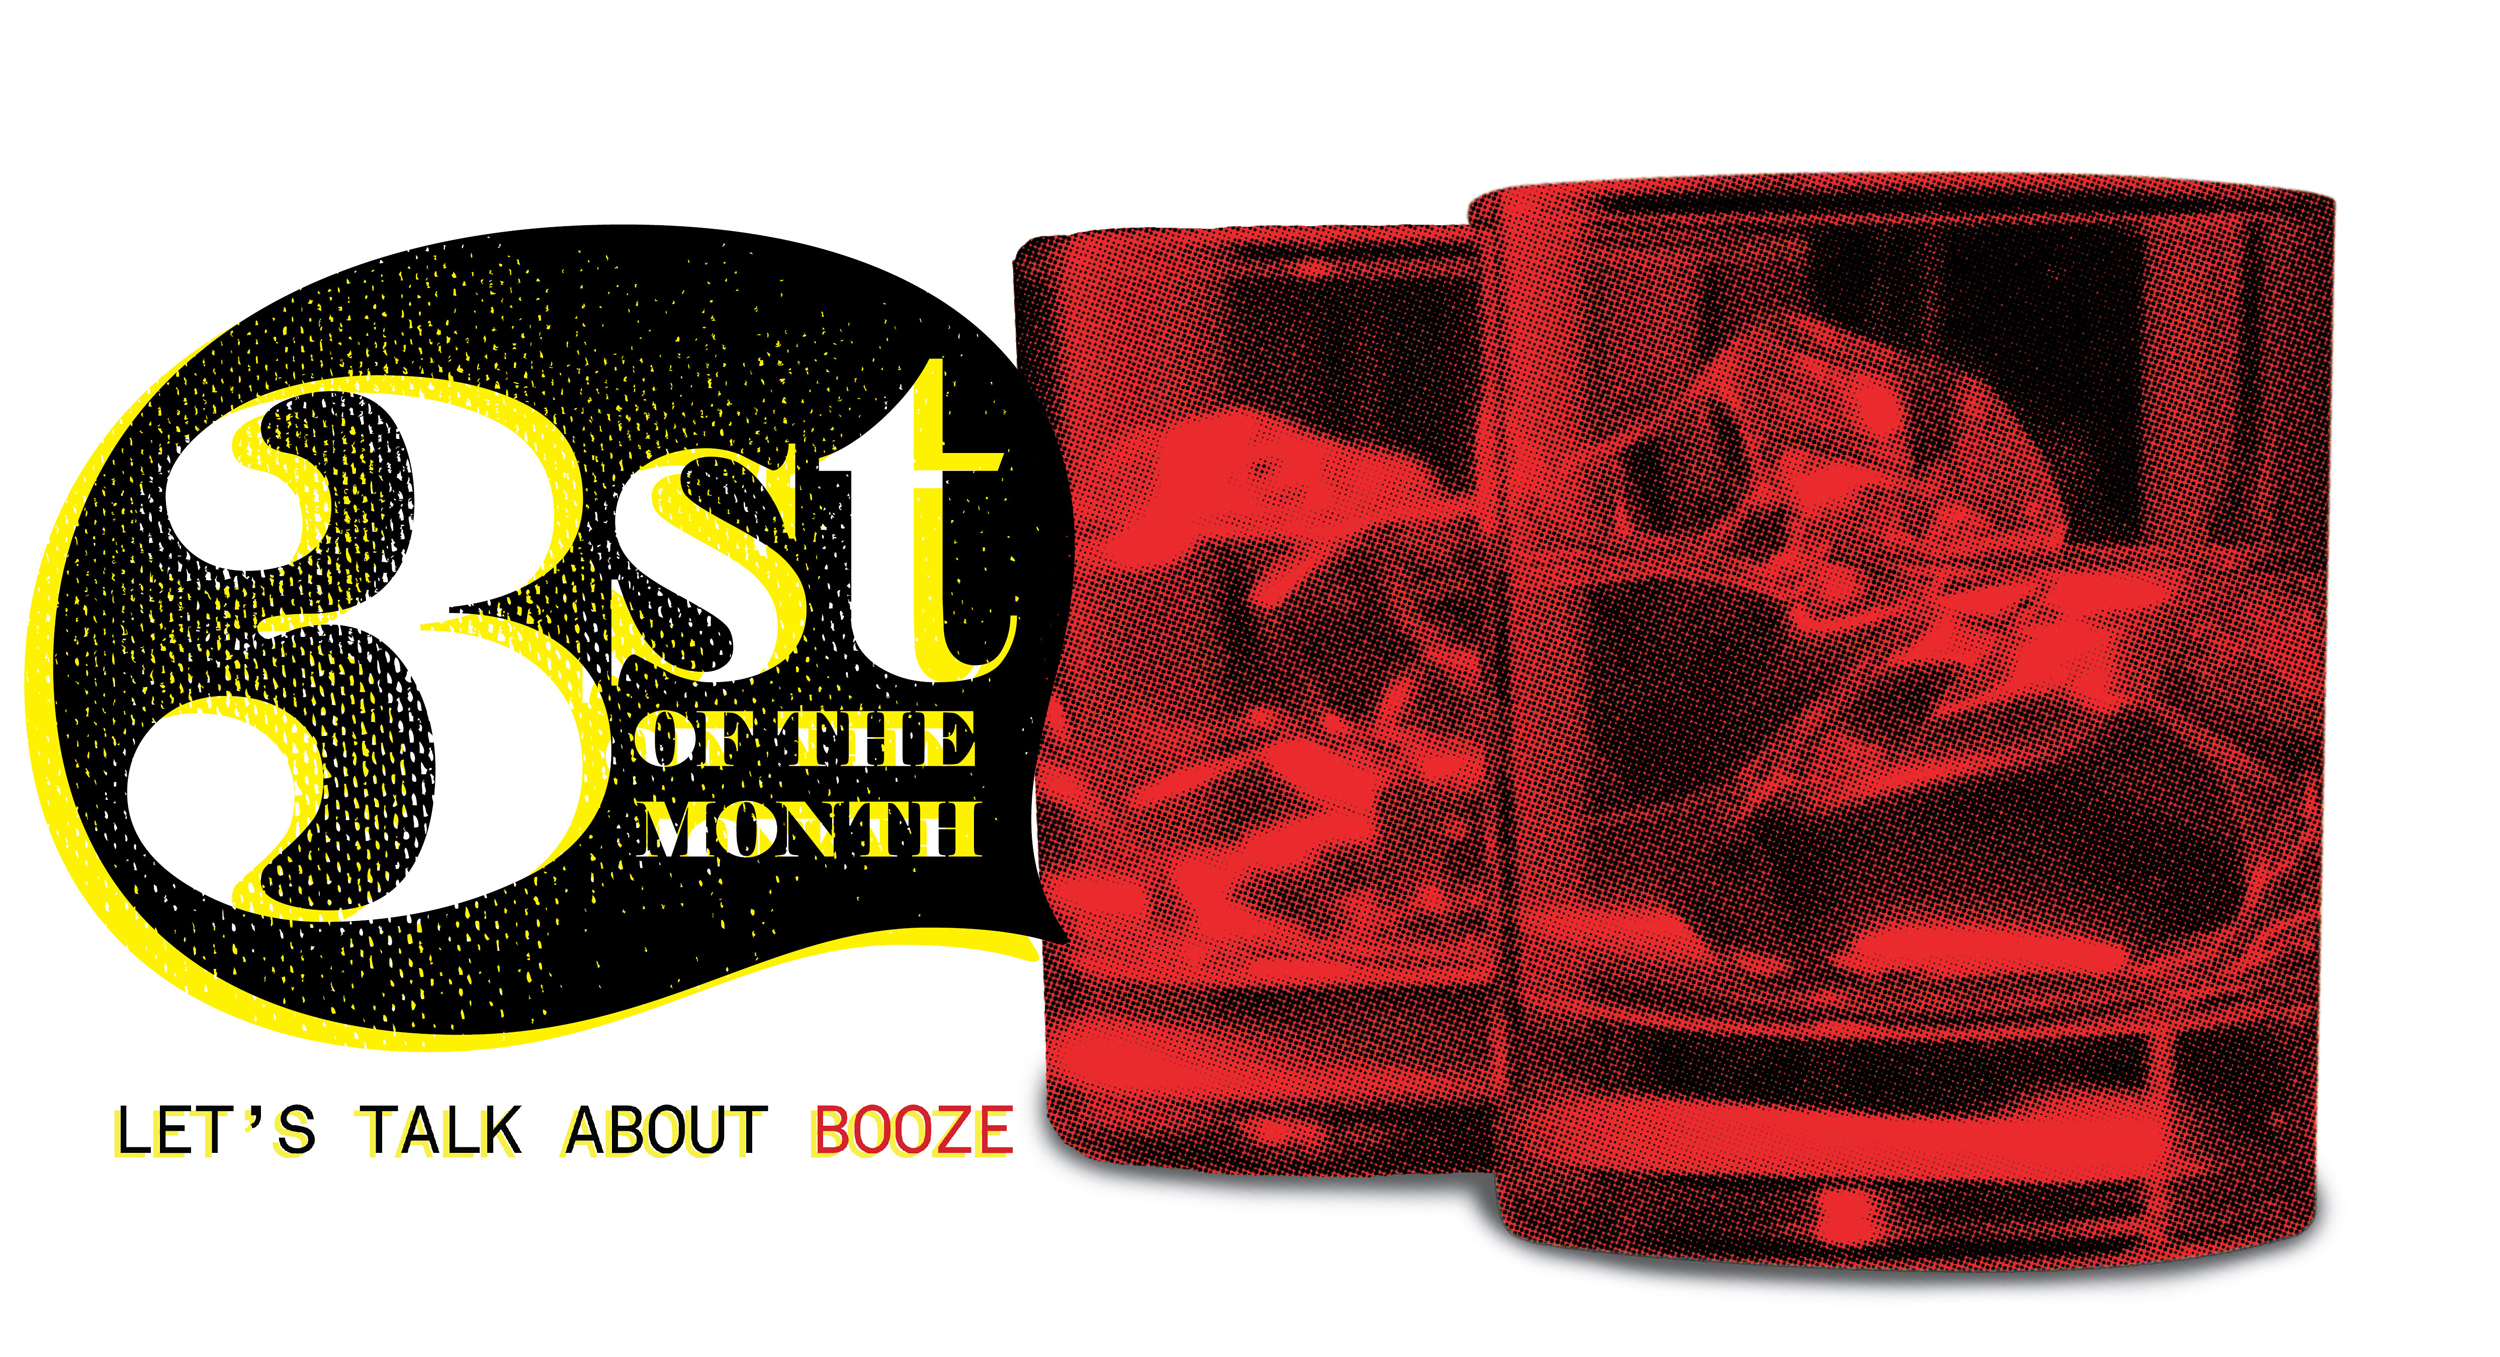 3st of the Month | Let's talk about BOOZE!